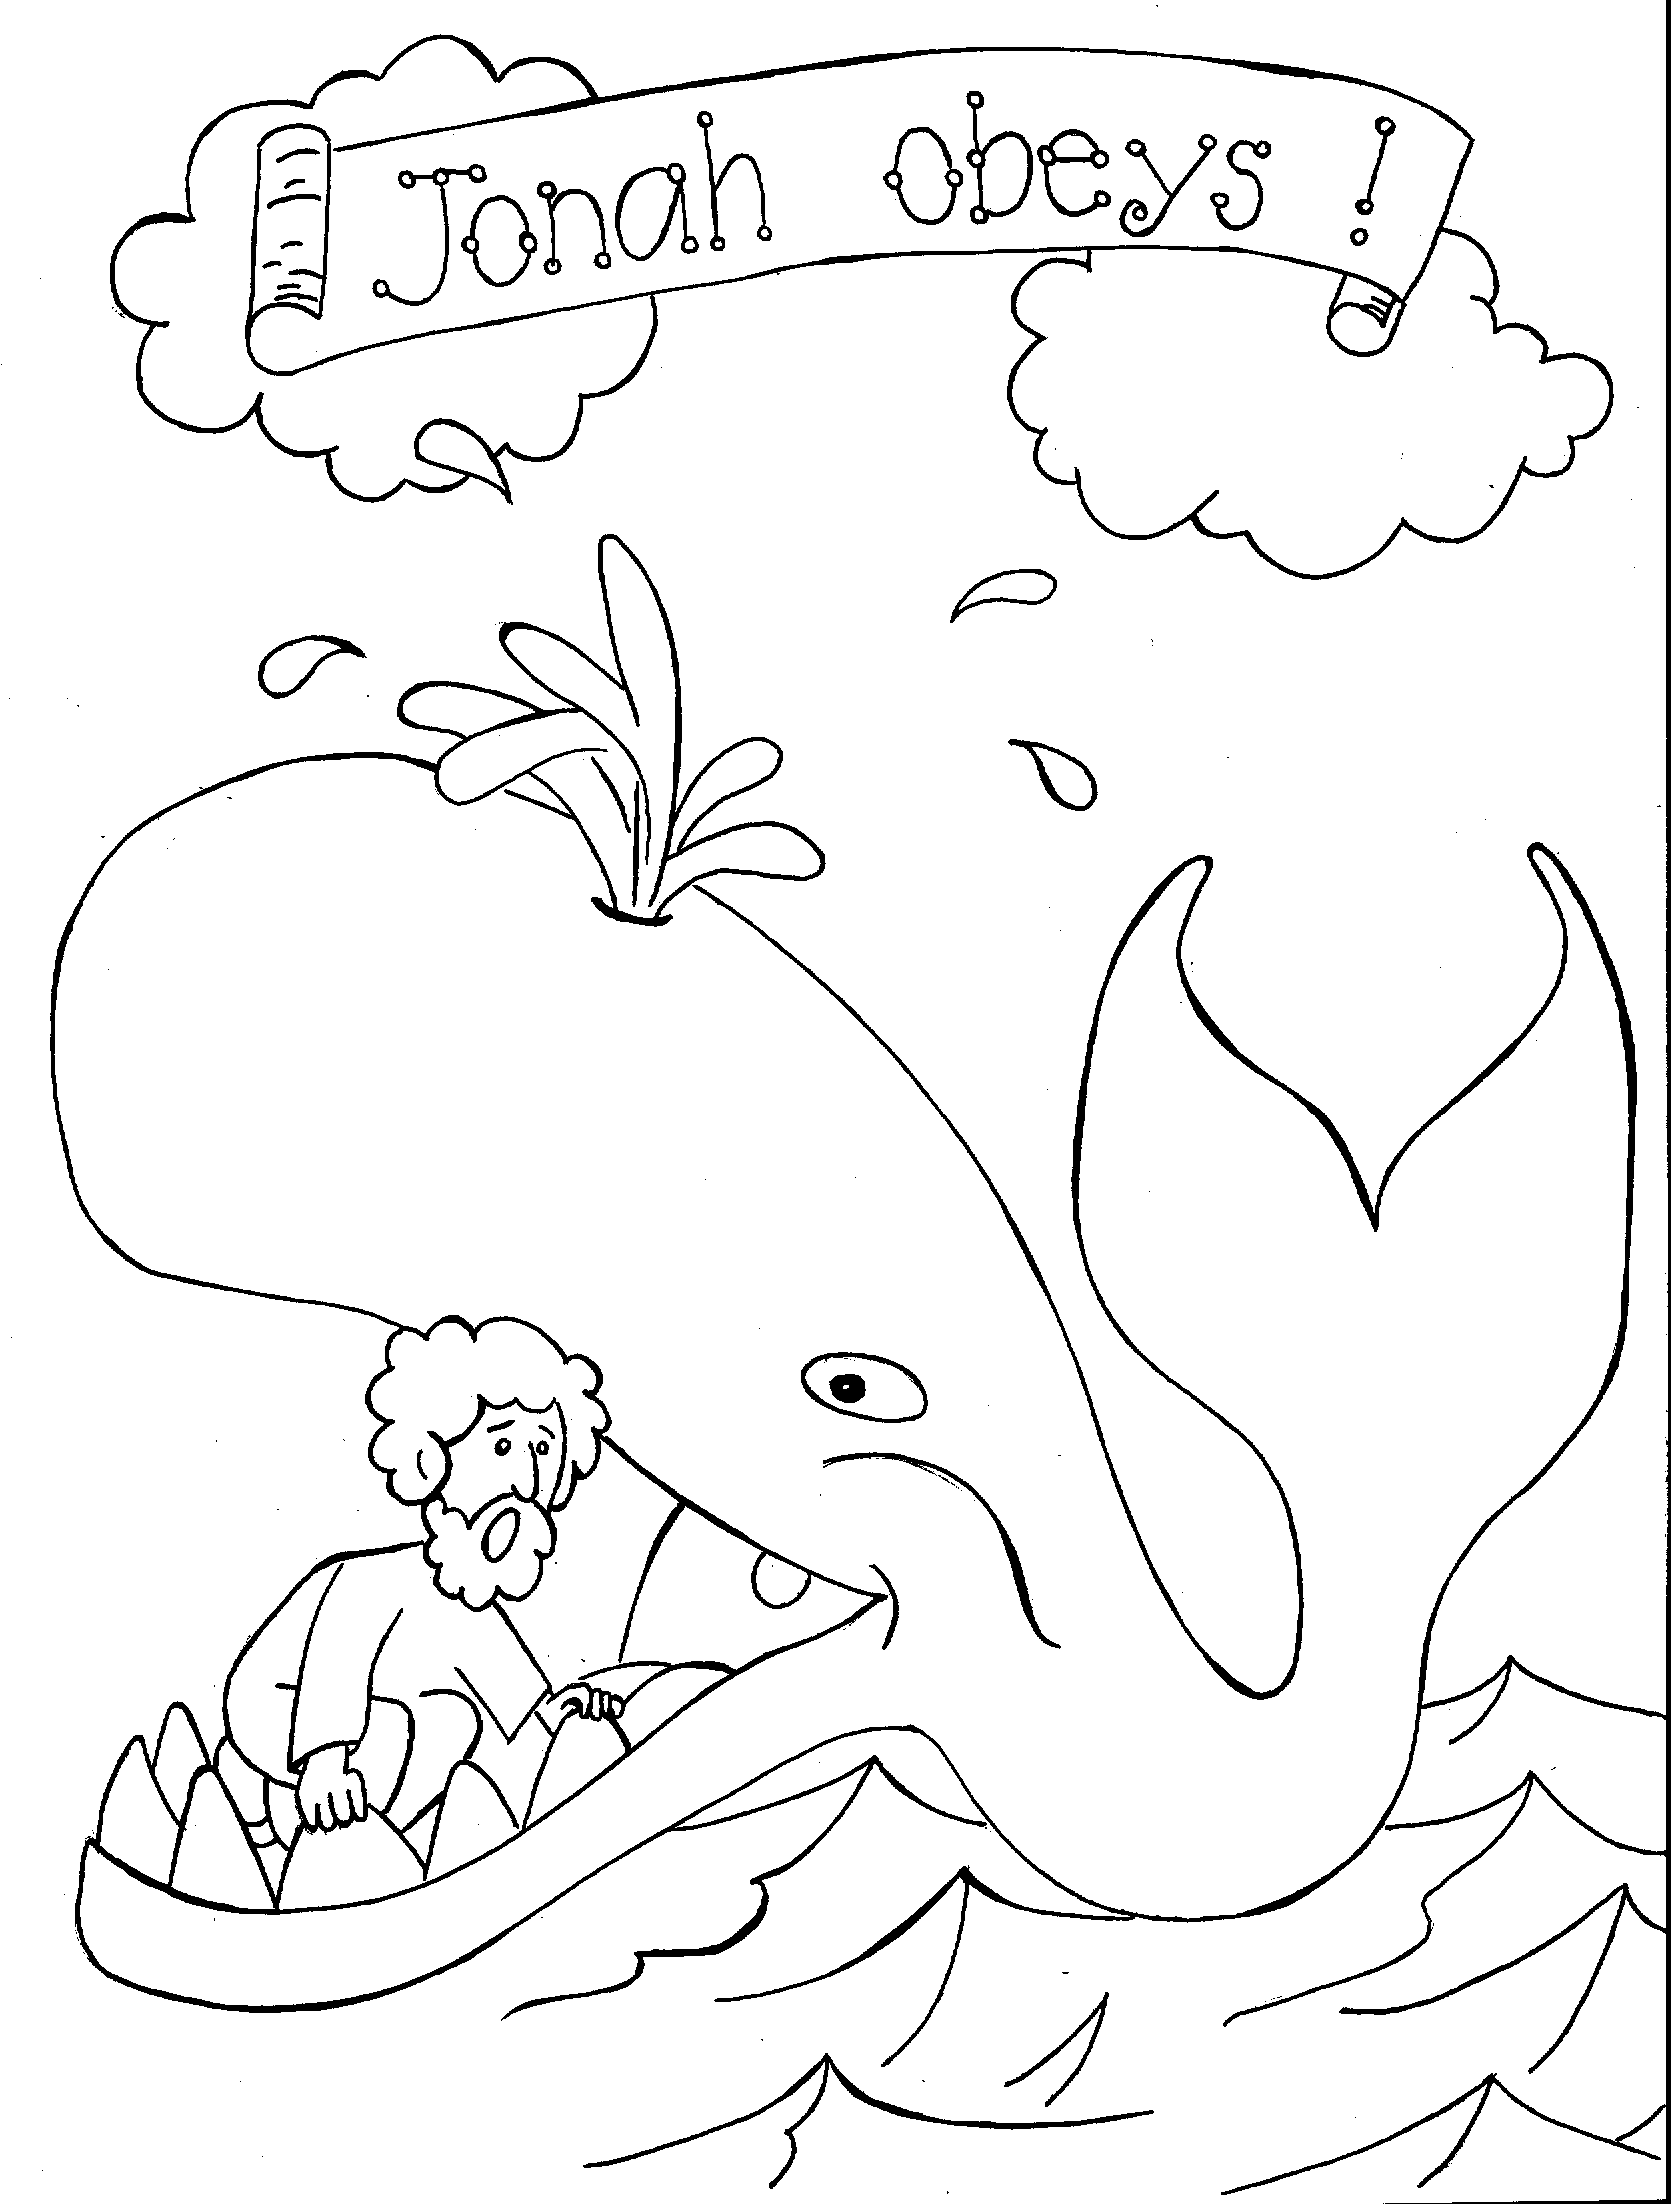 Free Printable Whale Coloring Pages For Kids Sunday School Coloring Pages Bible Coloring Pages Whale Coloring Pages